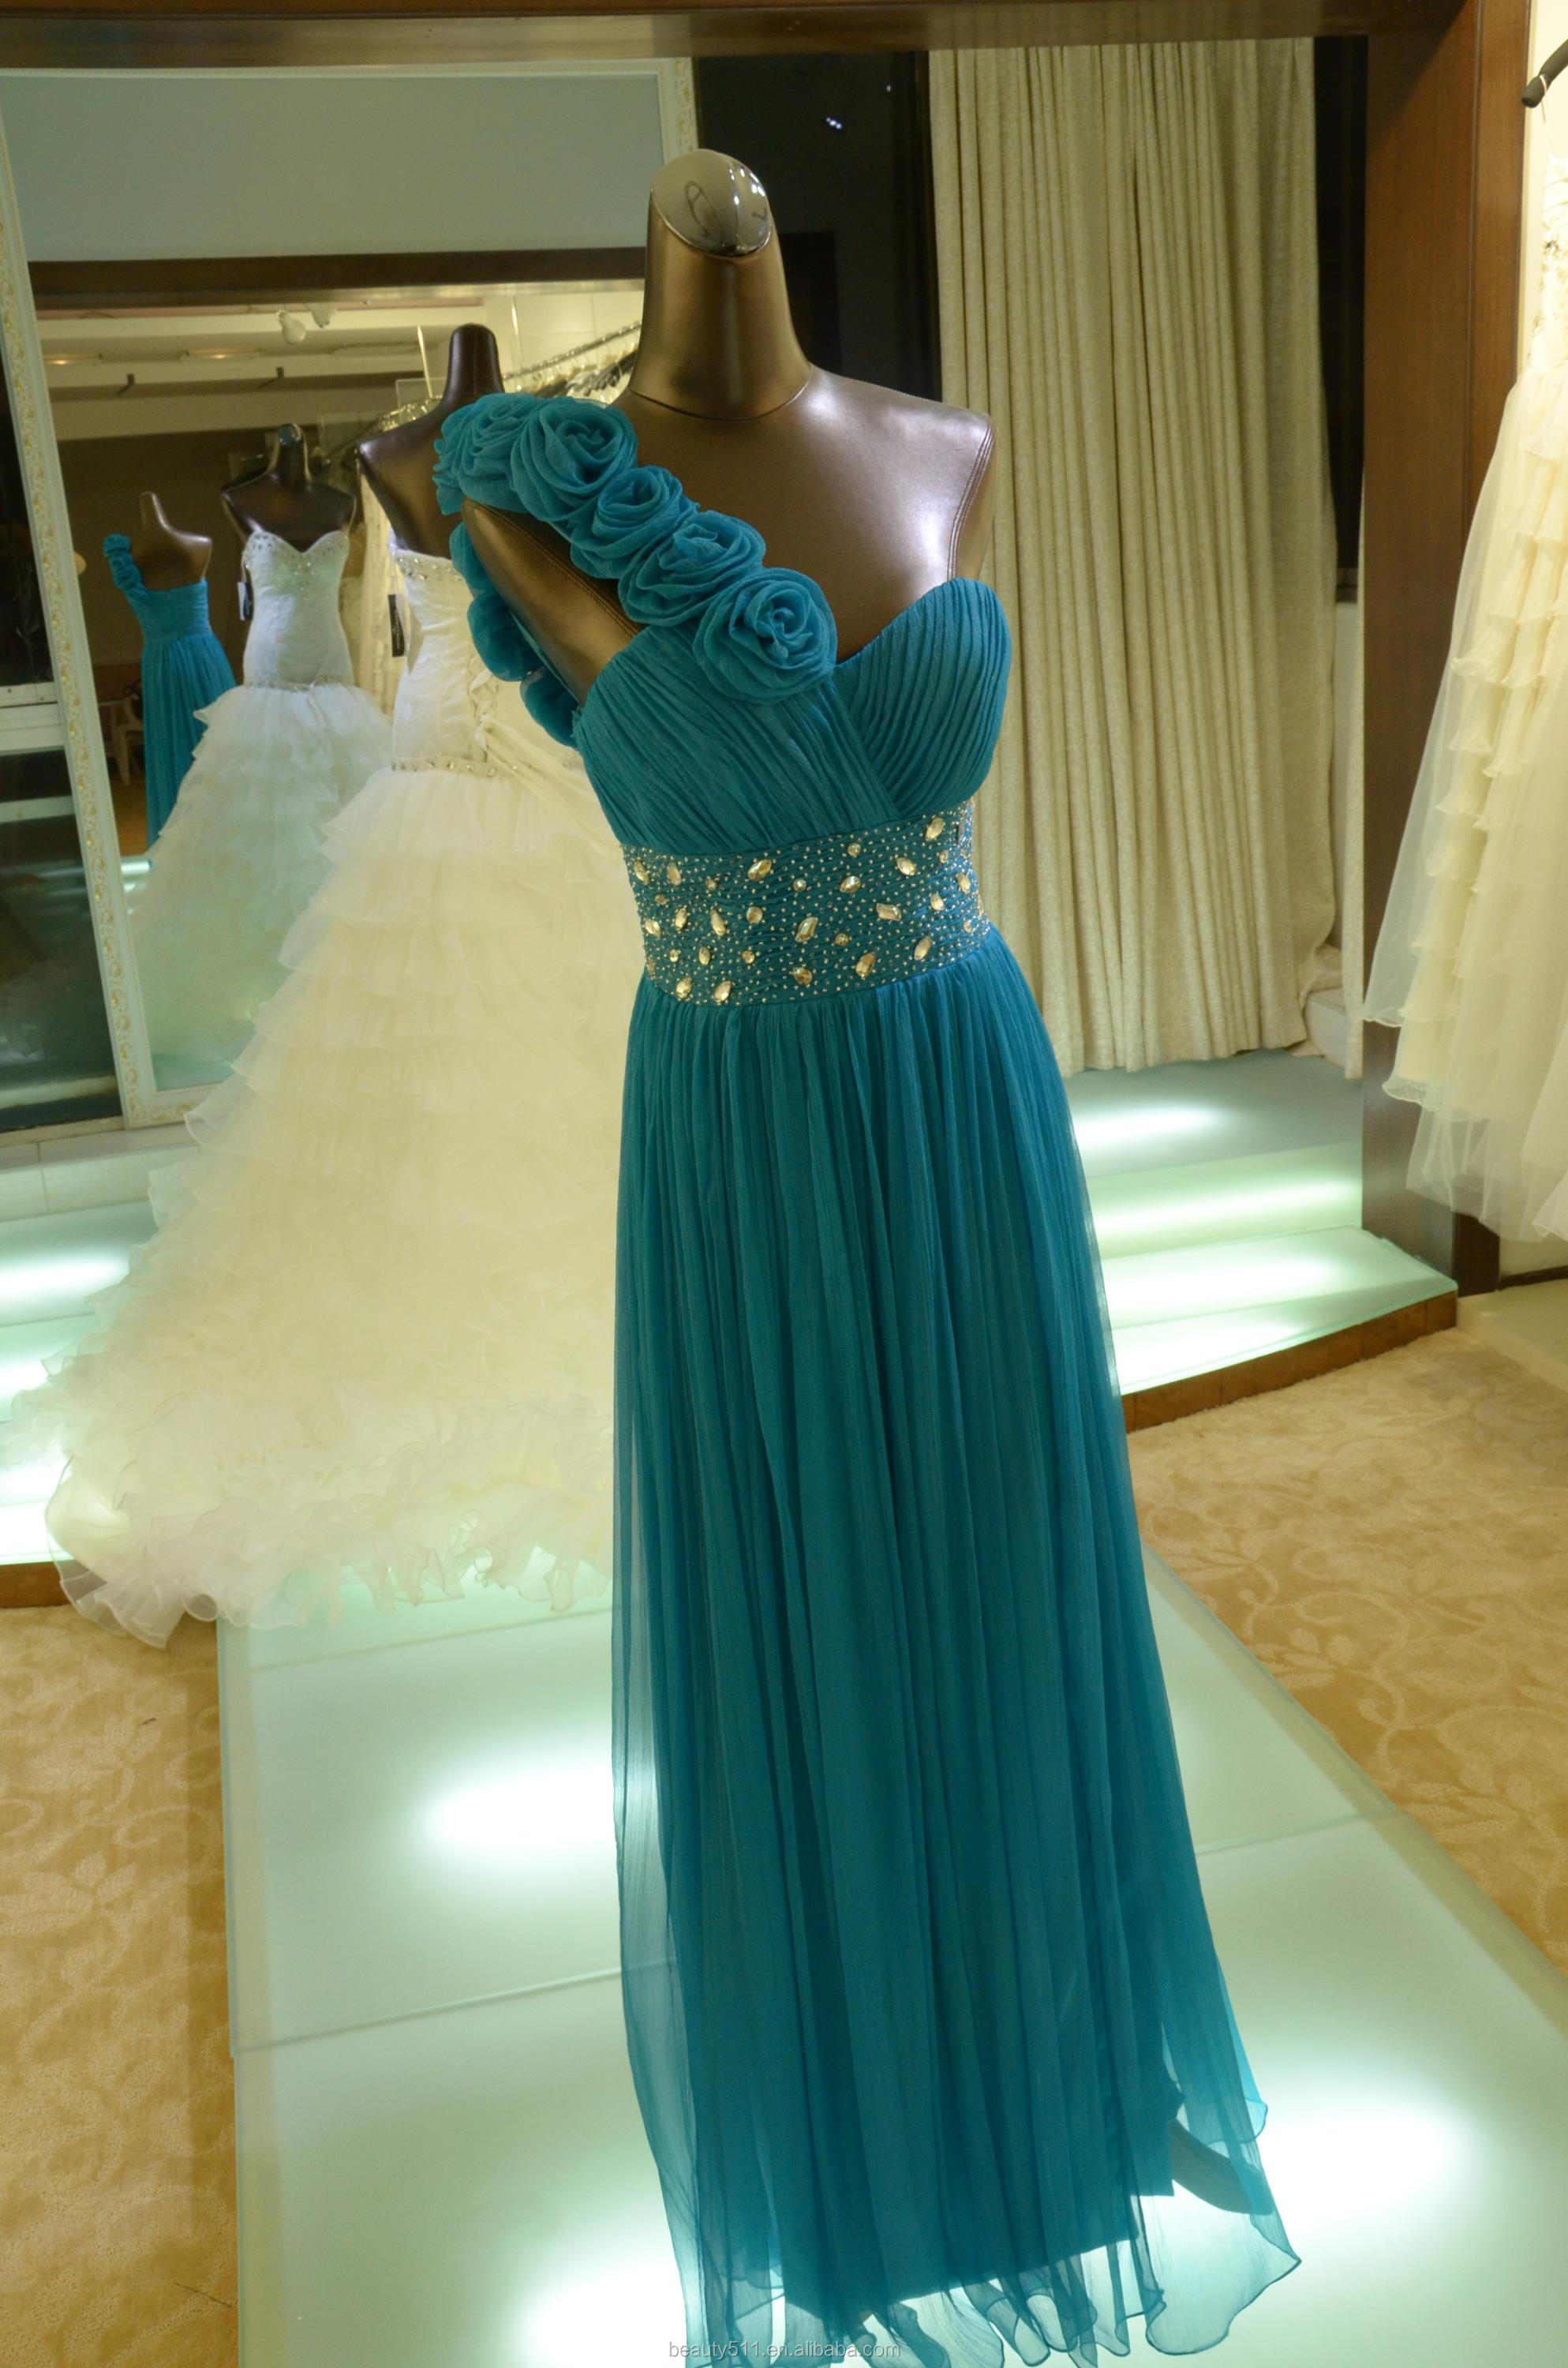 IN STOCK One-Shoulder real silk party dress women's short prom dress SE19